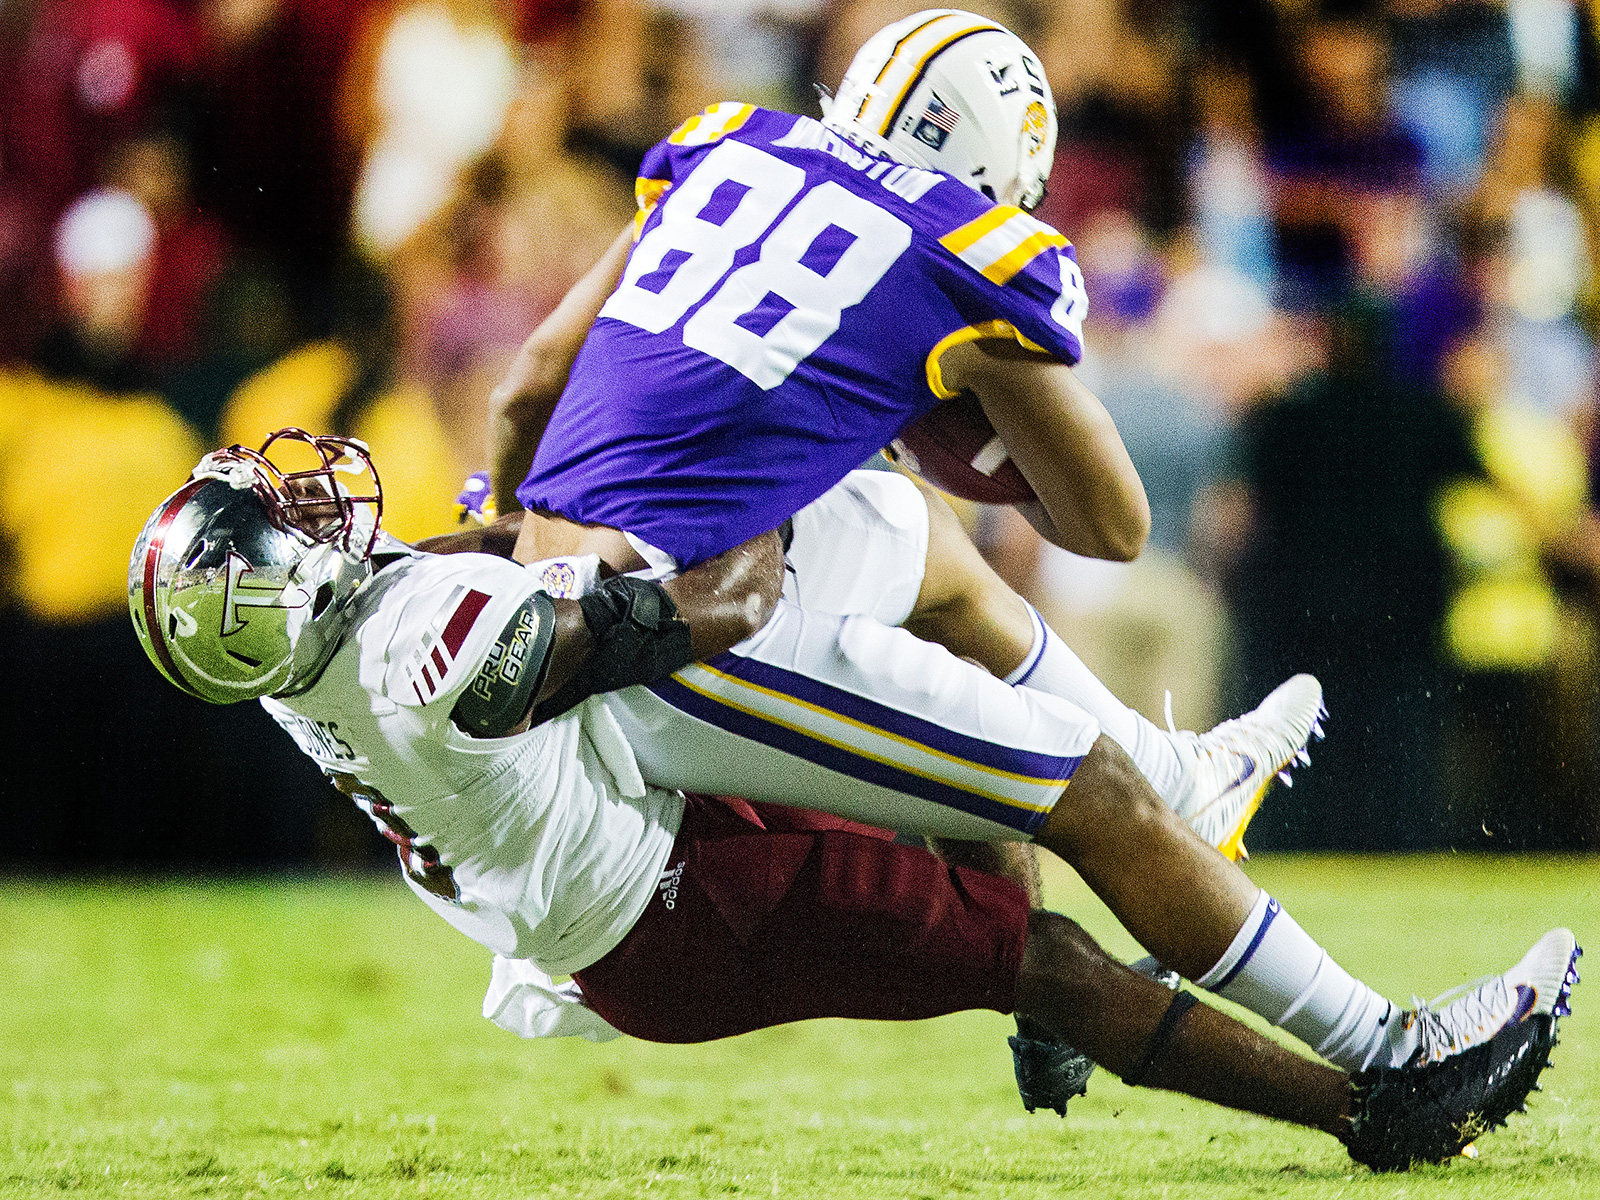 Amid growing tension between coach Ed Orgeron and offensive coordinator Matt Canada, LSU's offense looked lifeless, and its defense couldn't stop Trojans back Jordan Chunn, who lumbered for 191 yards and a touchdown. The Tigers played their way back from the brink of collapse in the ensuing weeks, while Troy went on to share the Sun Belt title with fellow revered giant-killer Appalachian State.